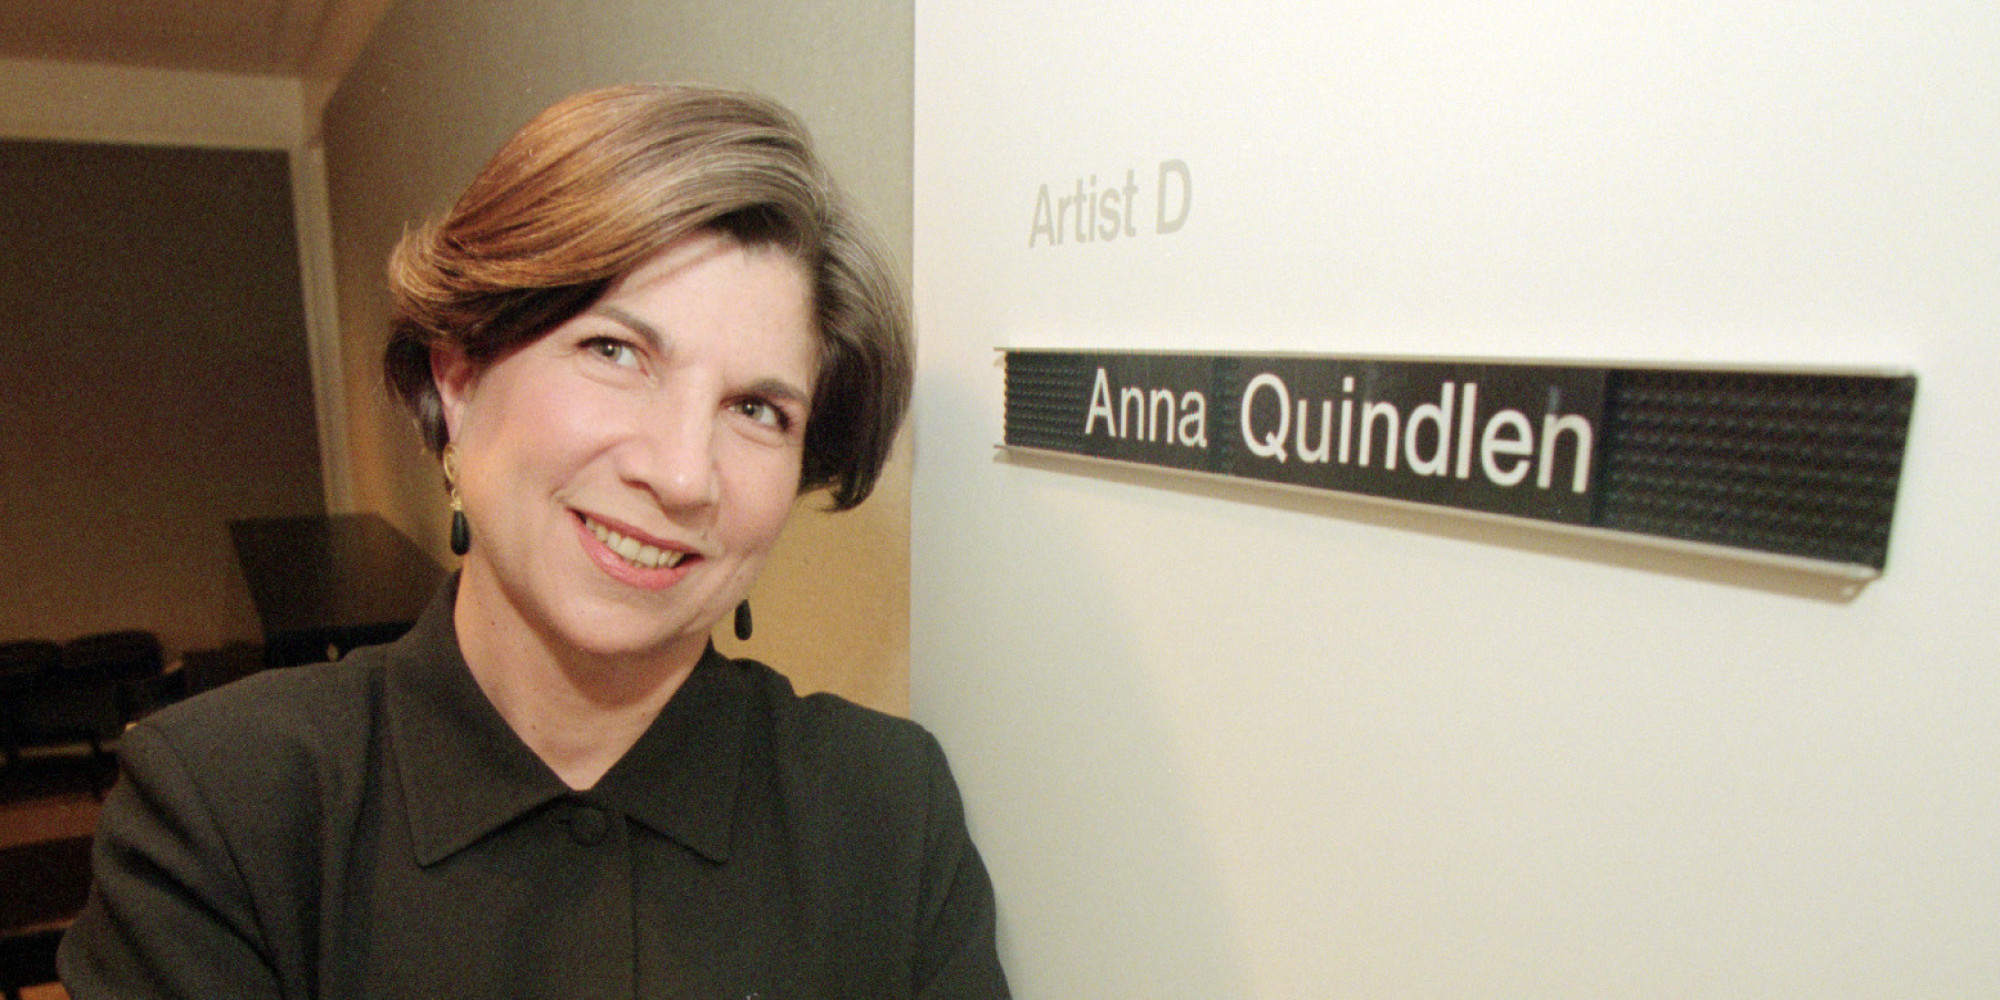 essay on homeless by anna quindlen Anna quindlen essays - order the necessary paper here and put aside your concerns work with our scholars to get the quality review following the requirements allow us to take care of your essay or dissertation.